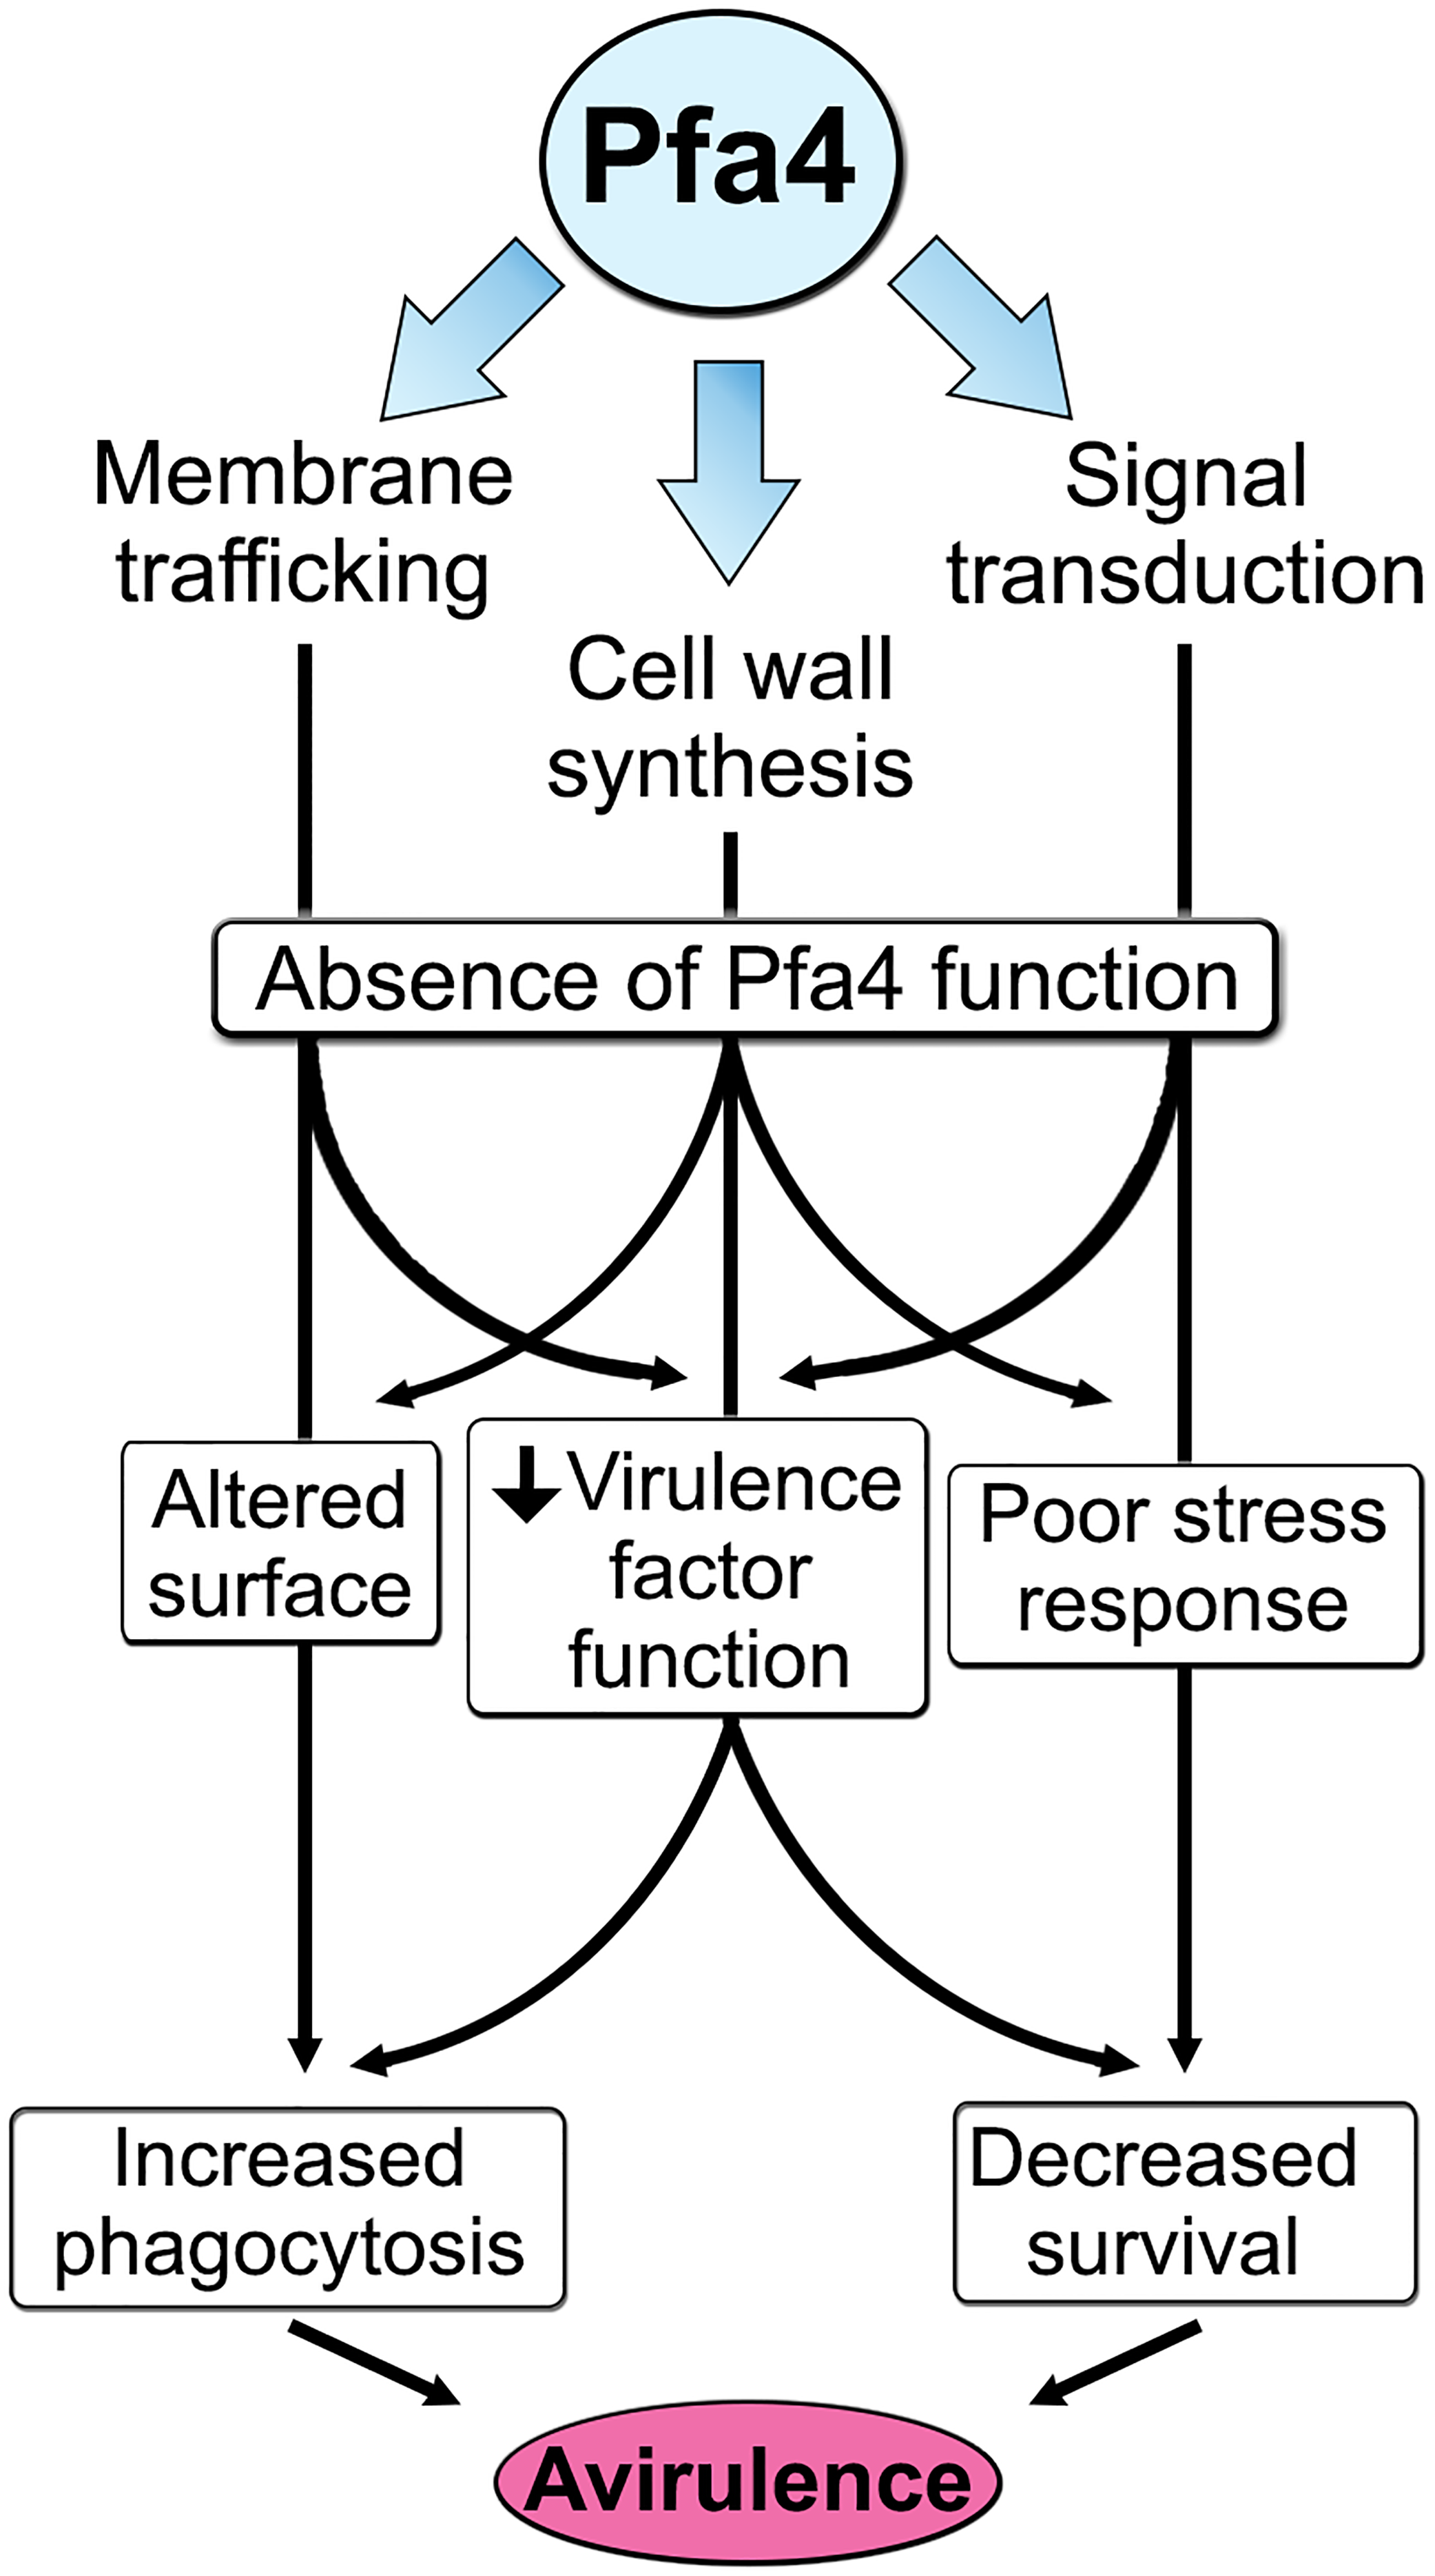 Model of Pfa4 function and relationship to morphology, stress tolerance, and virulence.